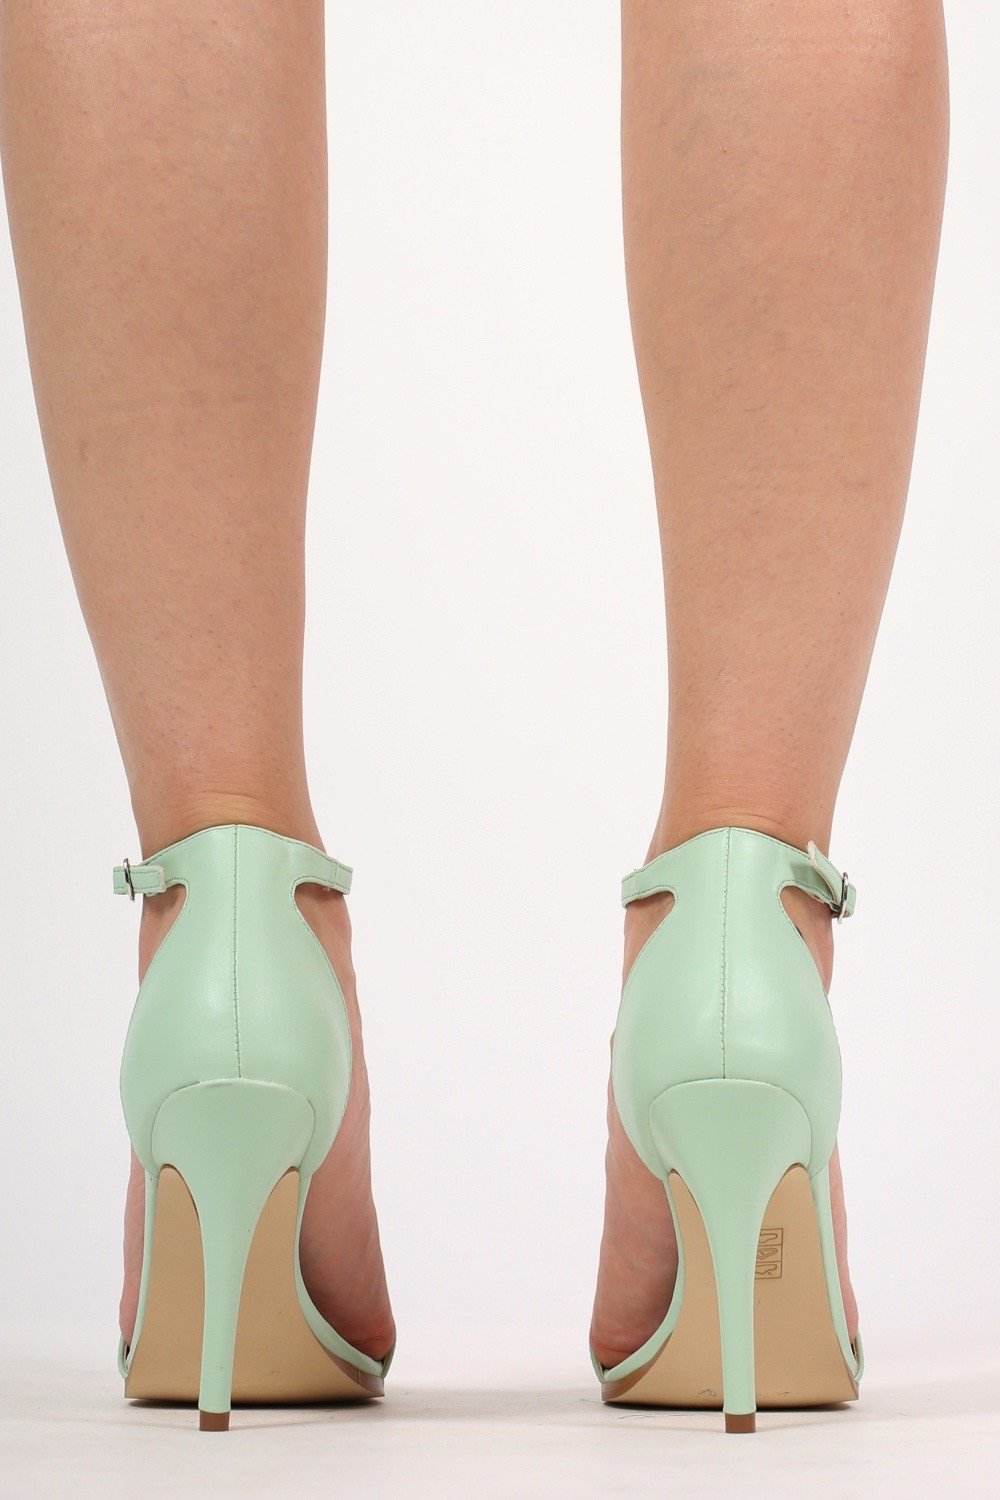 8638095cdc5a Maya Barely There Strappy High Heel Sandals in Mint Green MODEL BACK